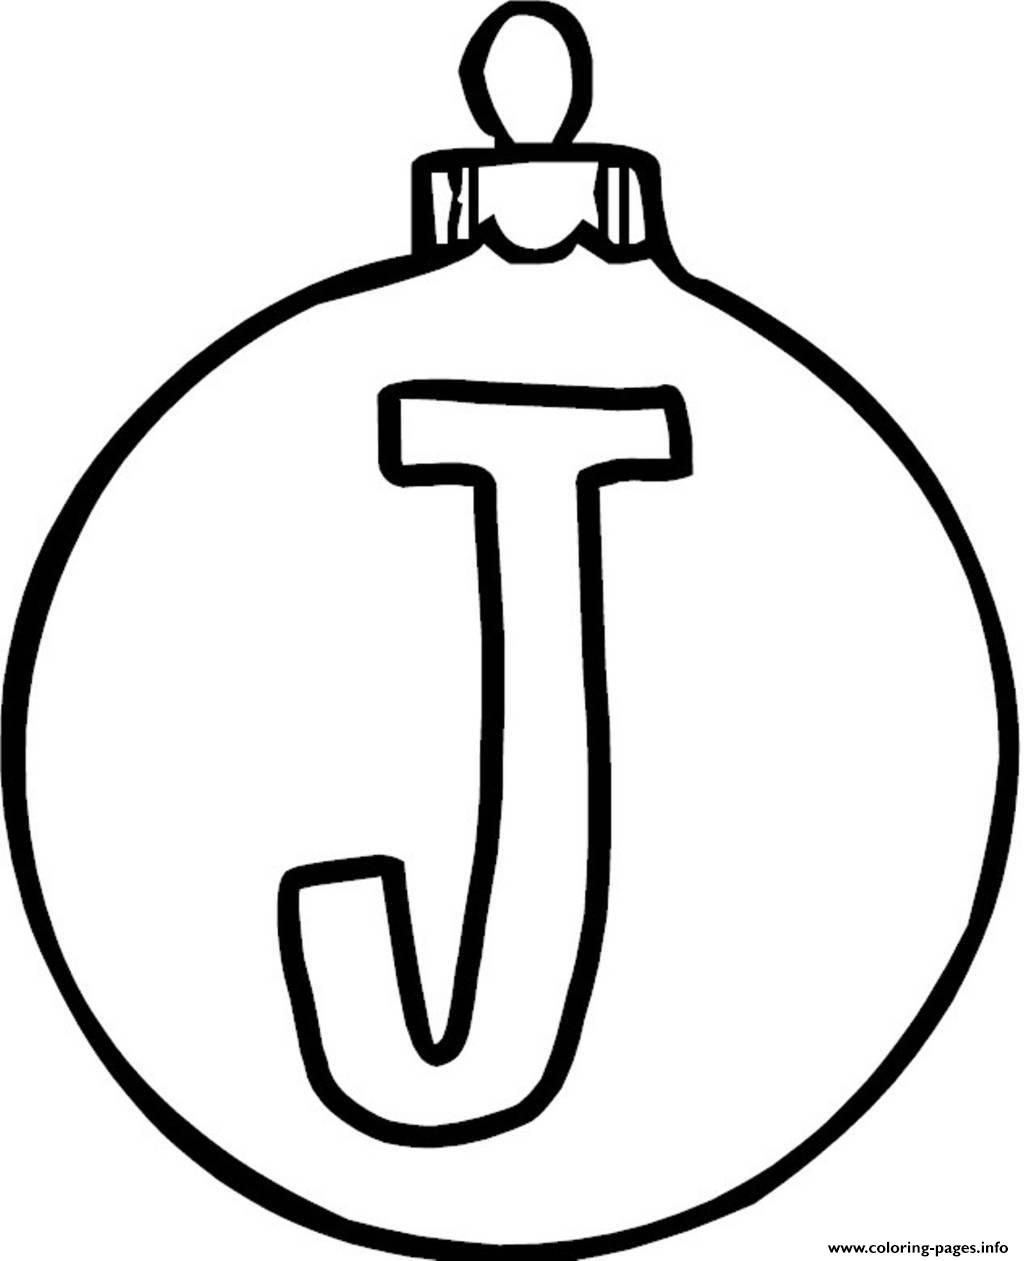 1024x1261 Unlock Ornament Coloring Pages To Print Innovative Christmas